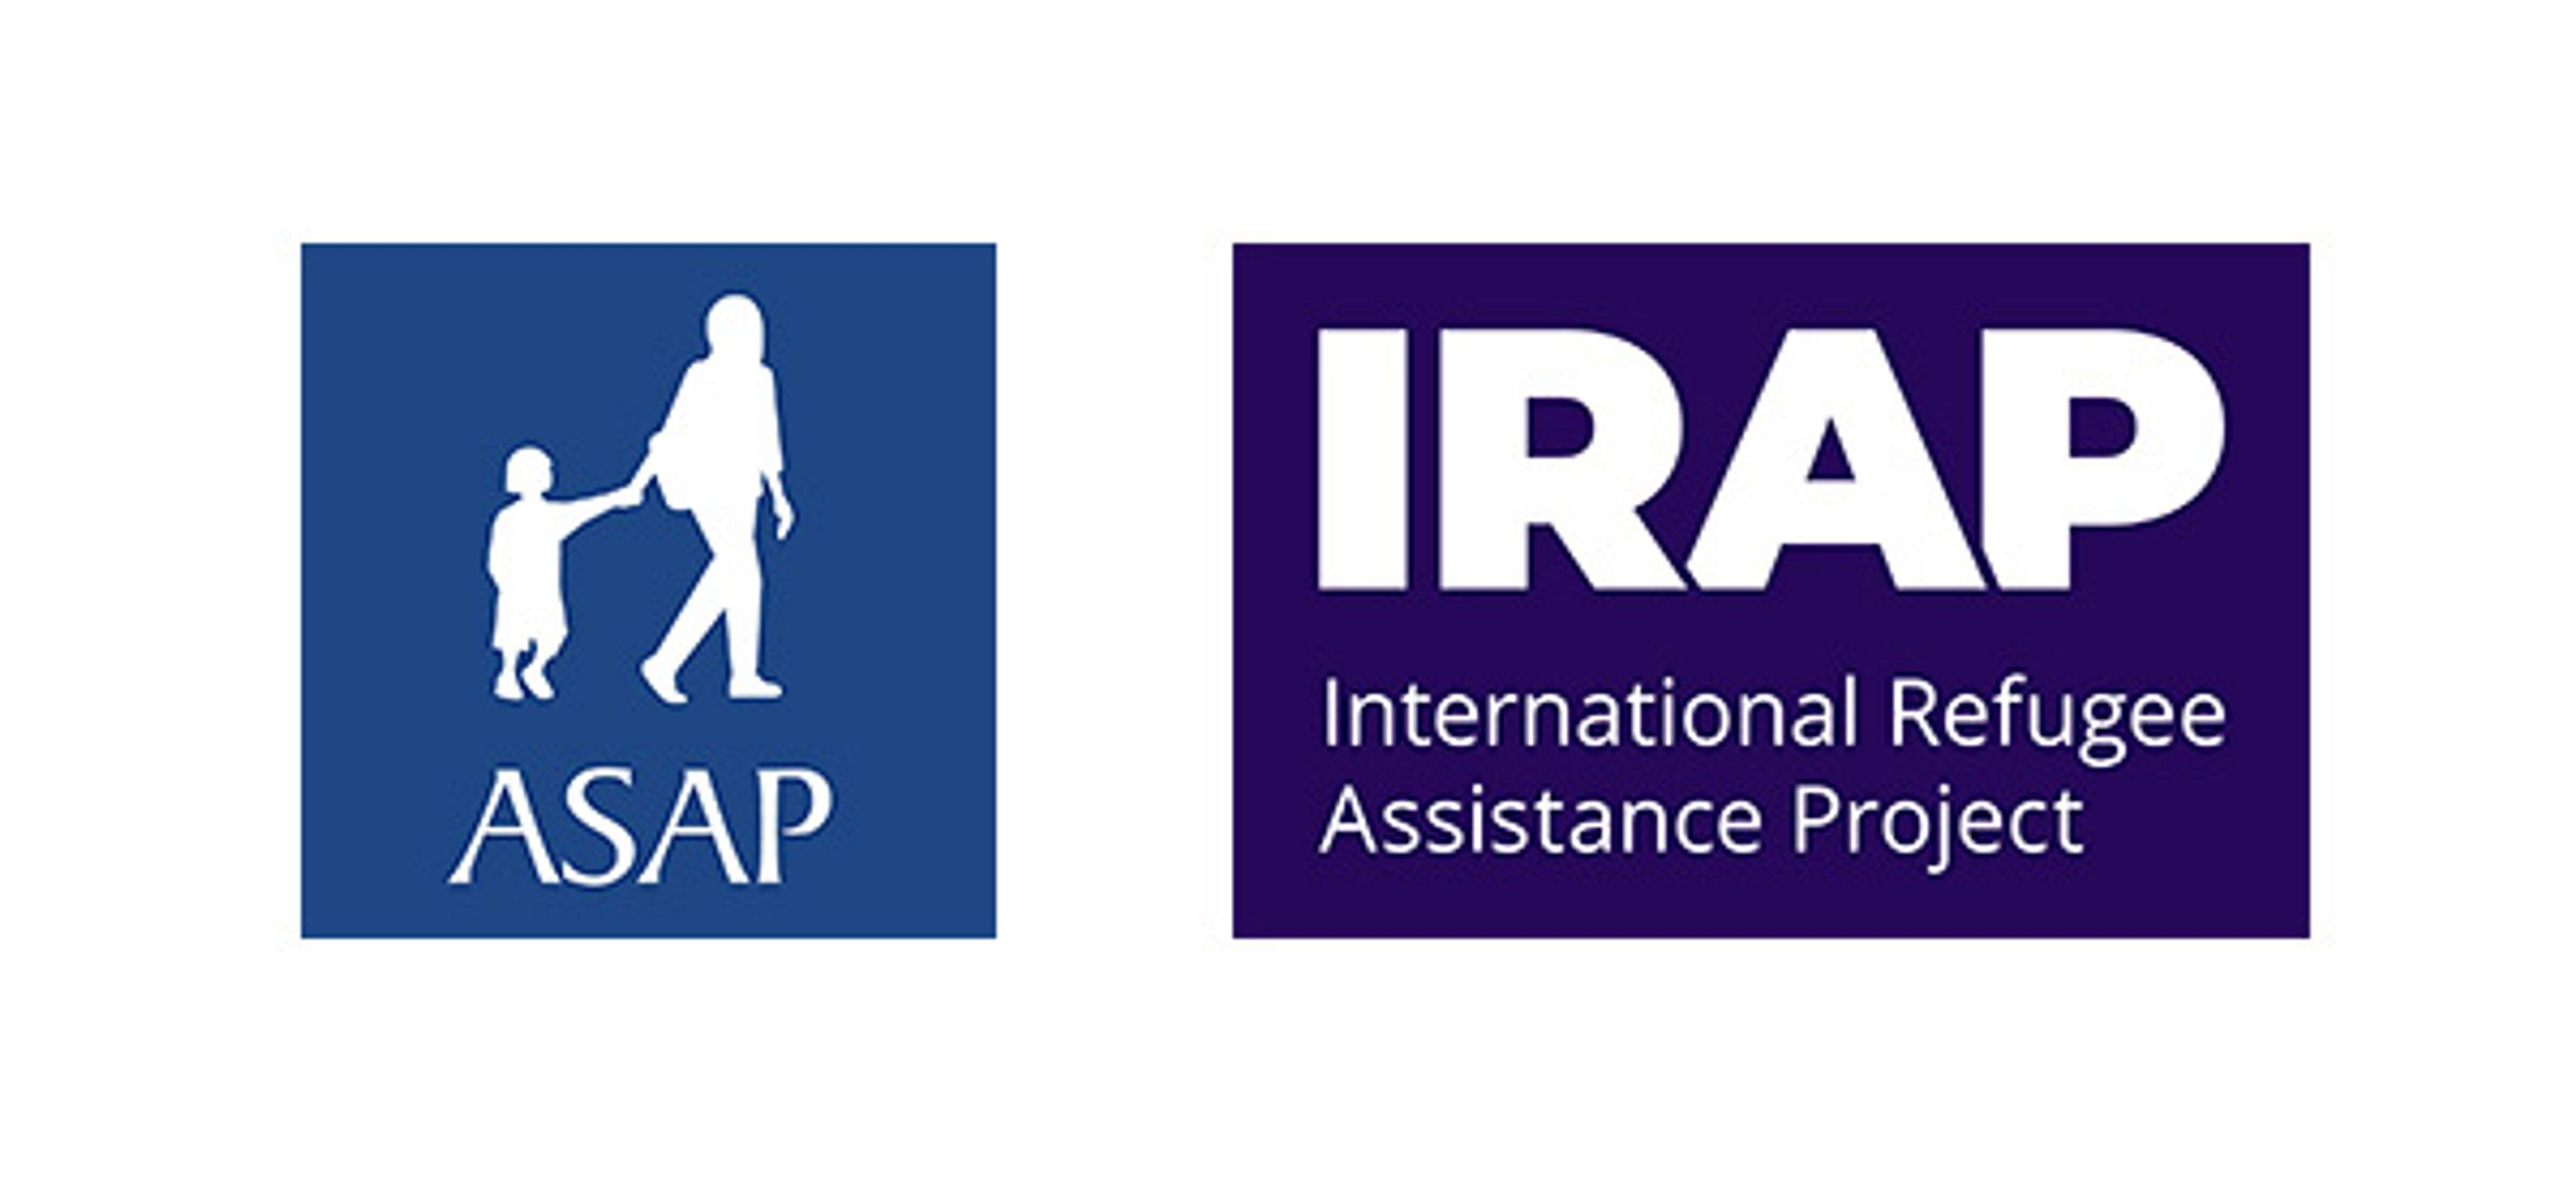 Side-by-side logos for the Asylum Seeker Advocacy Project (ASAP) and IRAP. ASAP's logo is bright blue background with a white silhouette of an adult holding a child's hand and walking with the text ASAP beneath it. IRAP's logo is a bright purple rectangle with the text IRAP in bold and underneath it International Refugee Assistance Project.